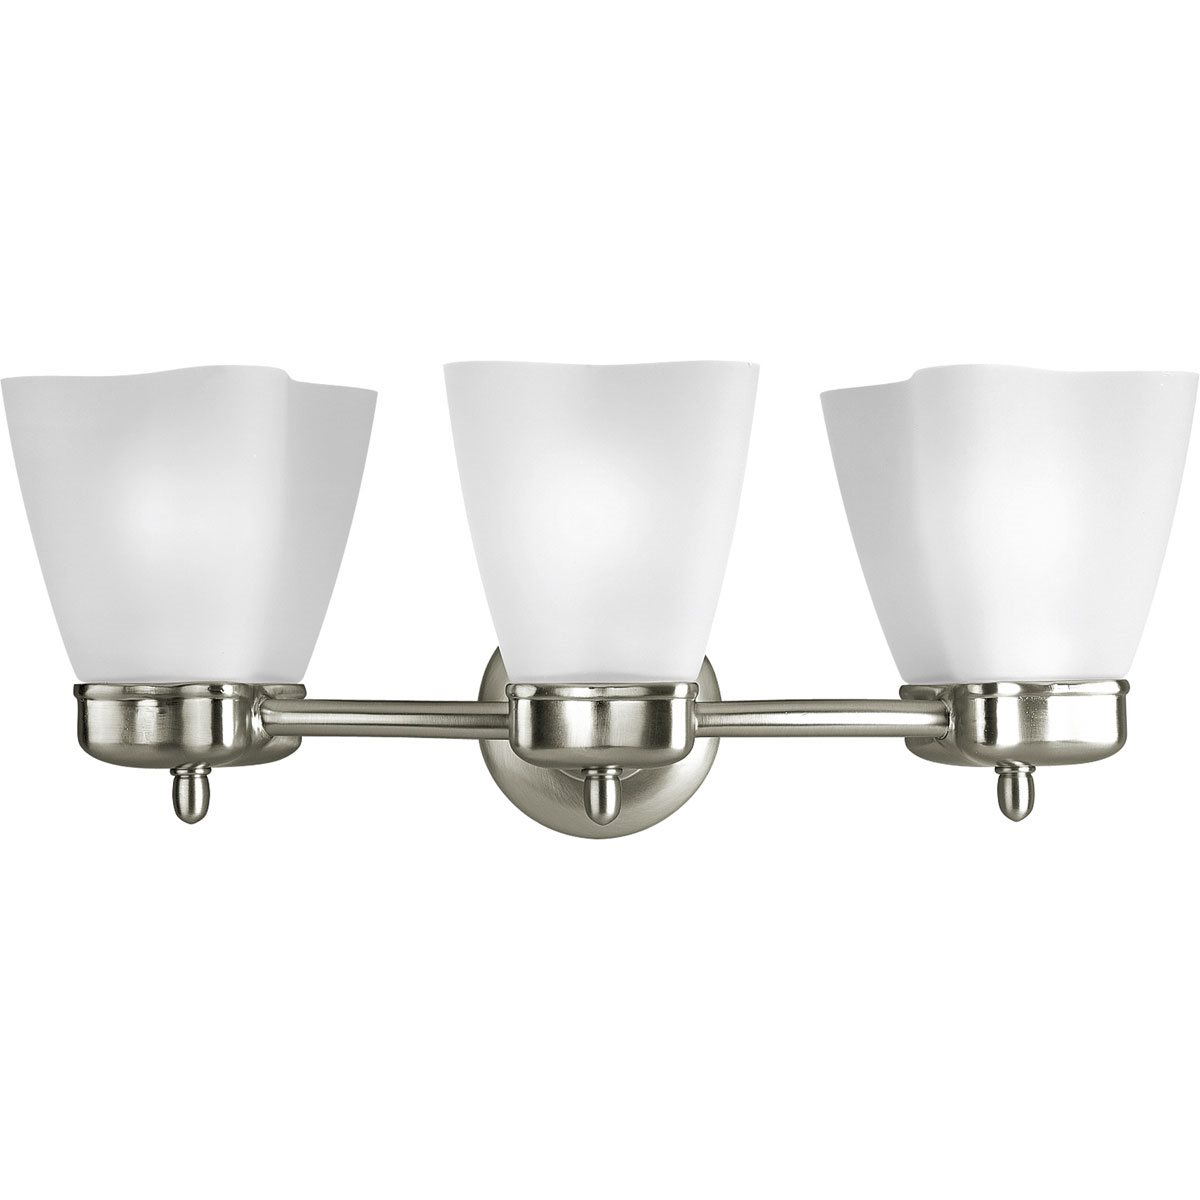 Delta Bathroom Vanity Lights : Delta P3242-09 Michael Graves Modern / Contemporary Bathroom / Vanity Light PG-P3242-09